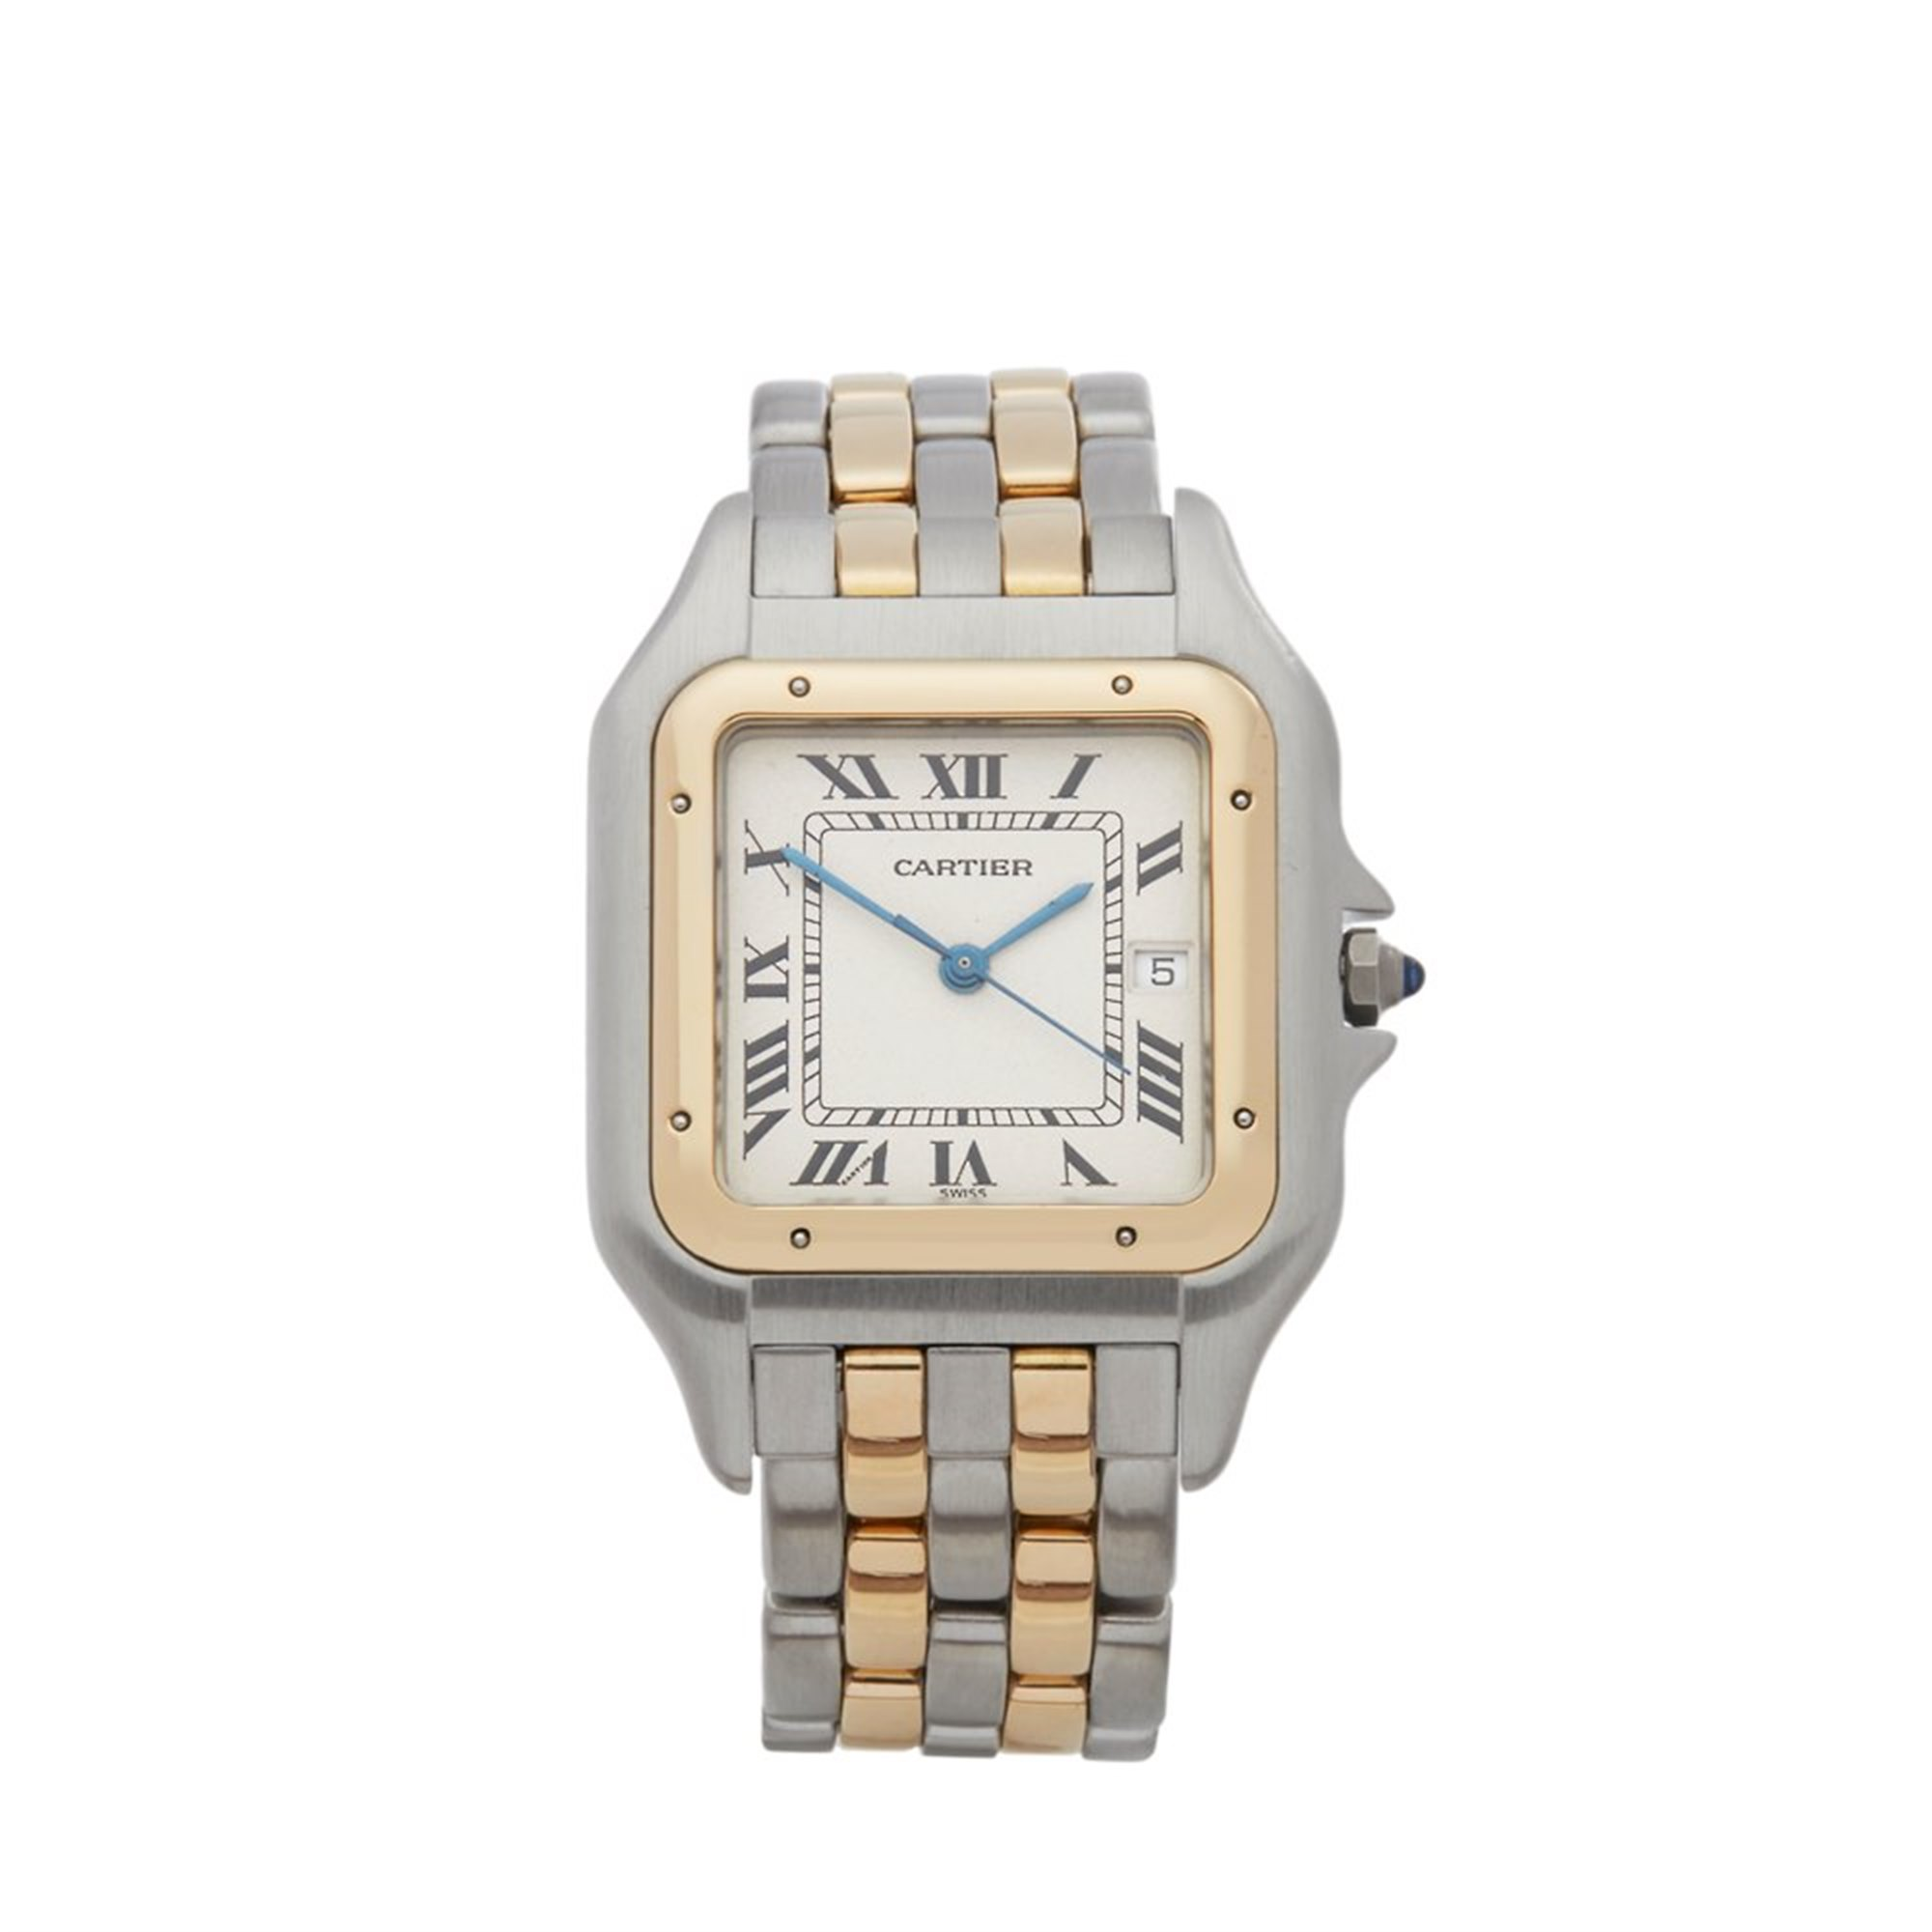 Cartier Panthère Jumbo 18K Stainless Steel & Yellow Gold 183957